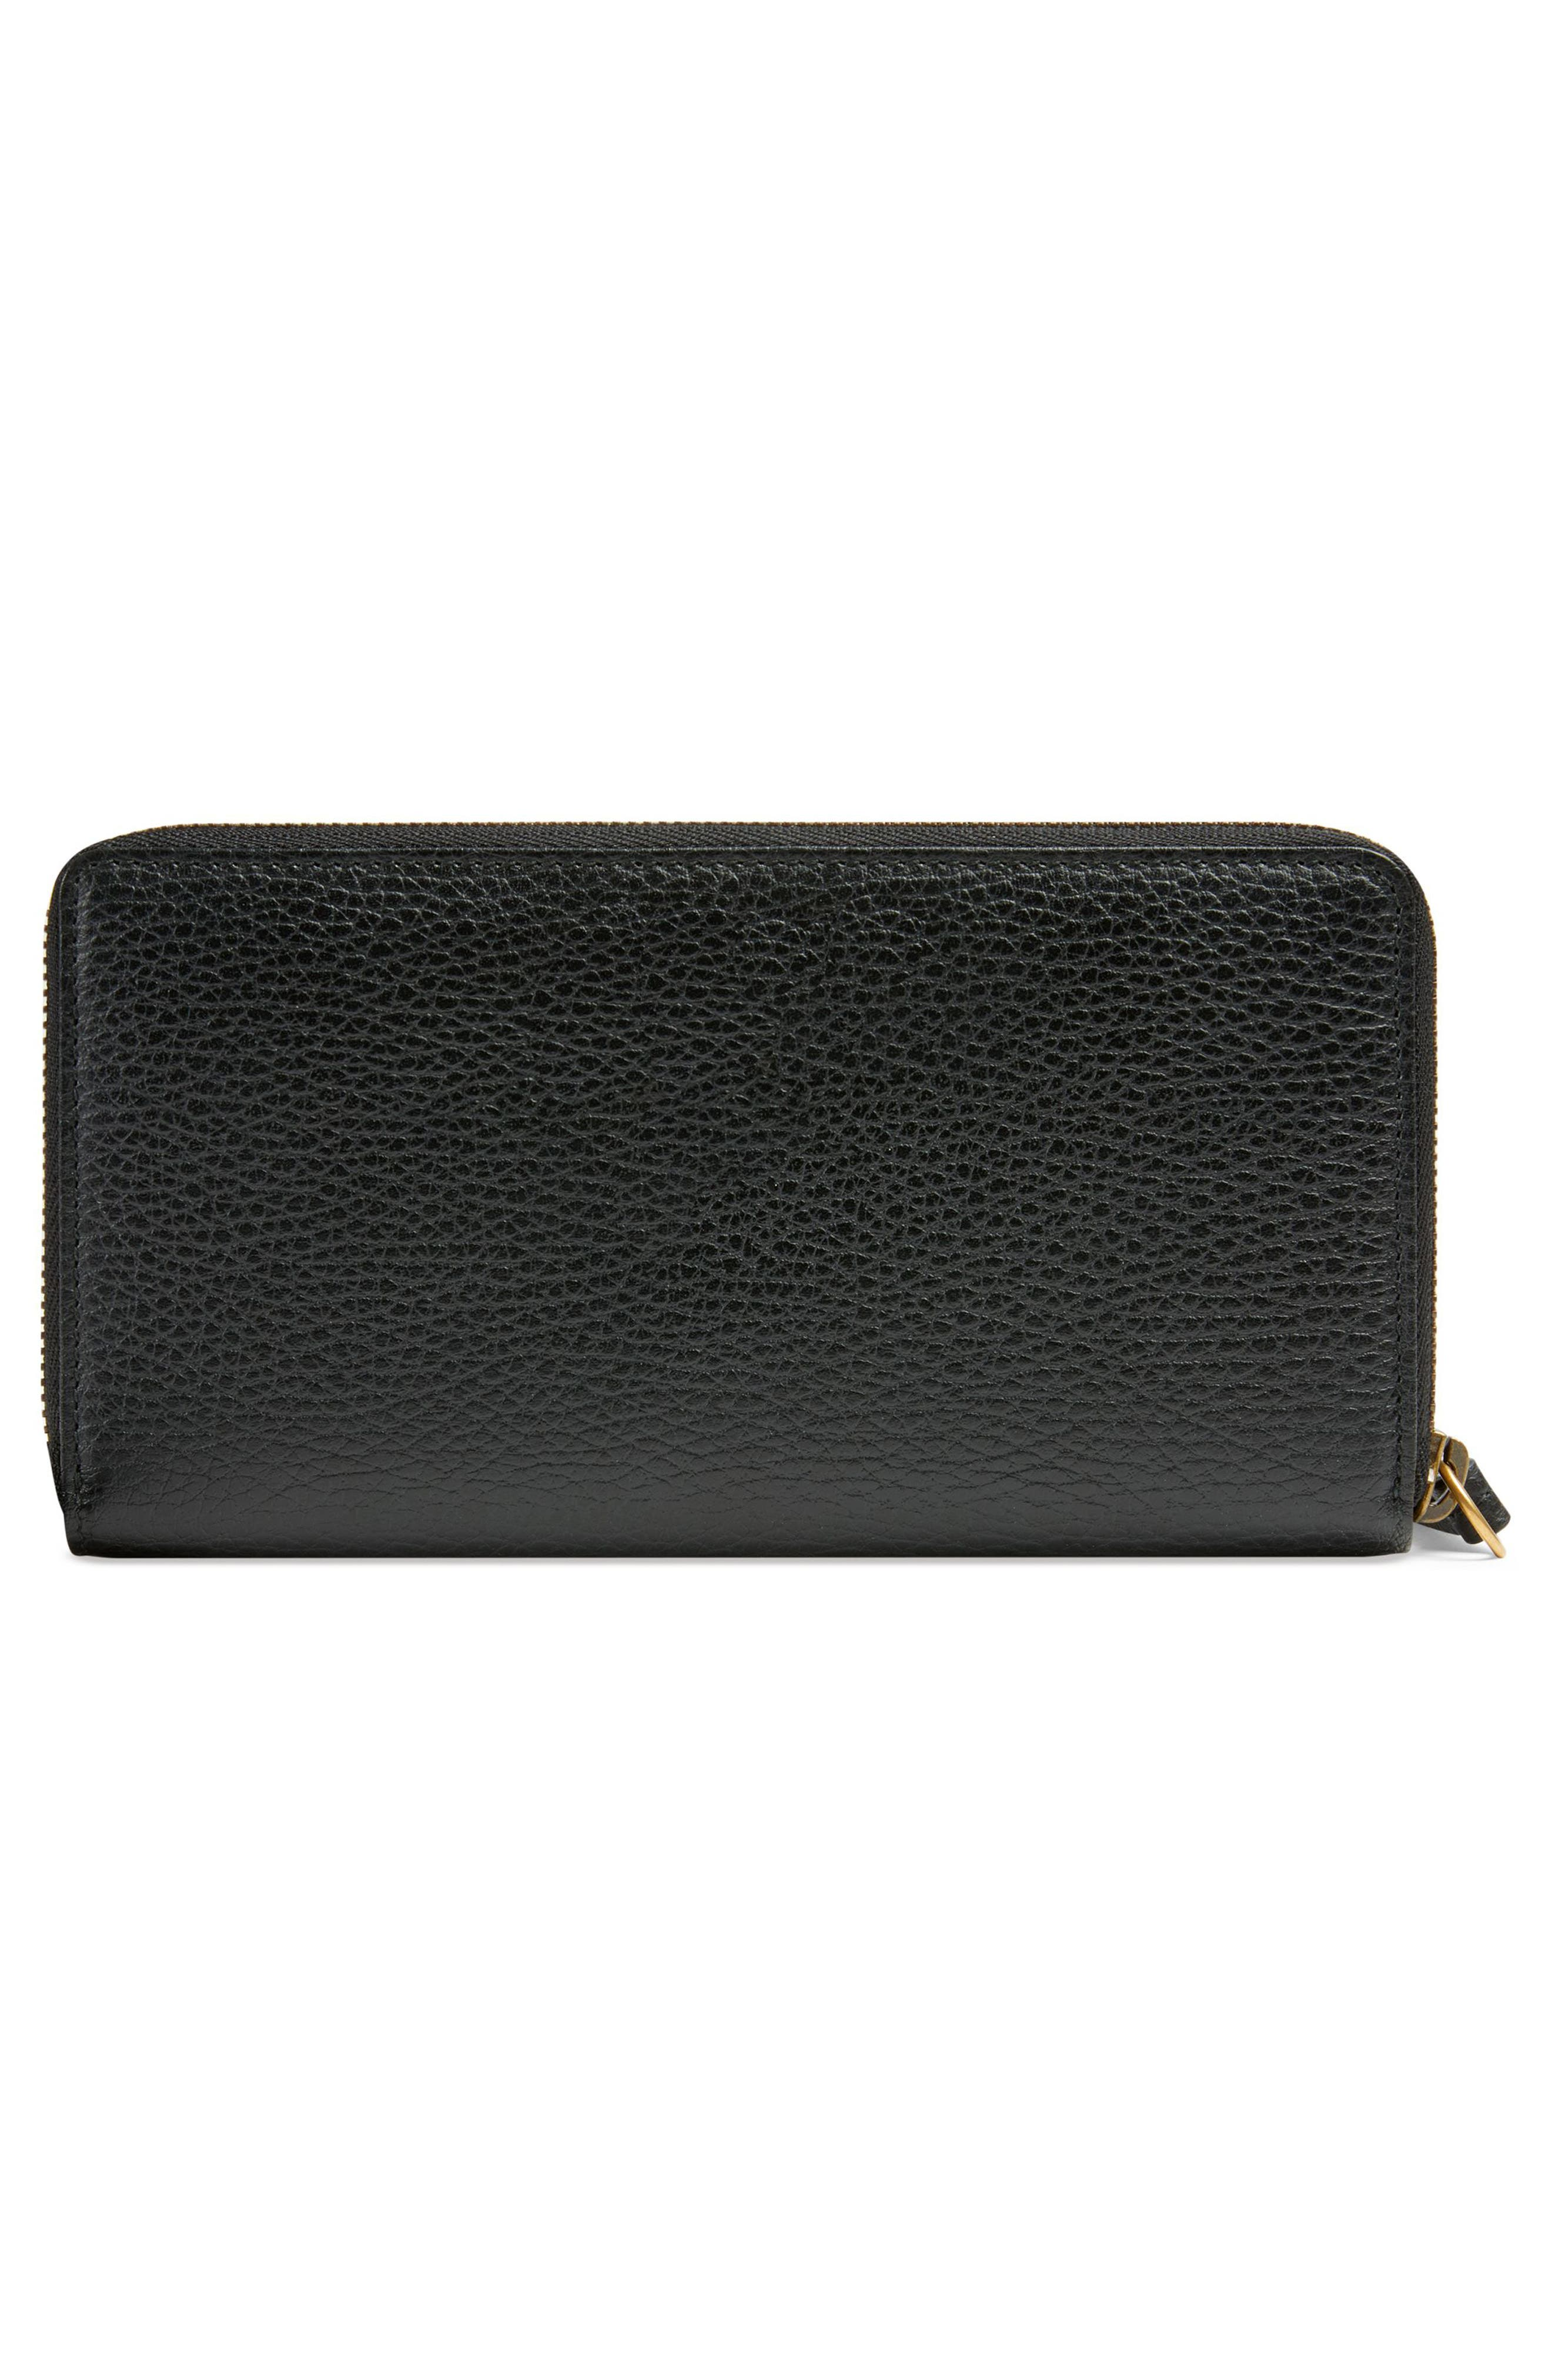 Linea Fioccino Leather Continental Wallet,                             Alternate thumbnail 3, color,                             NERO/ PERFECT PINK/ CRYSTAL